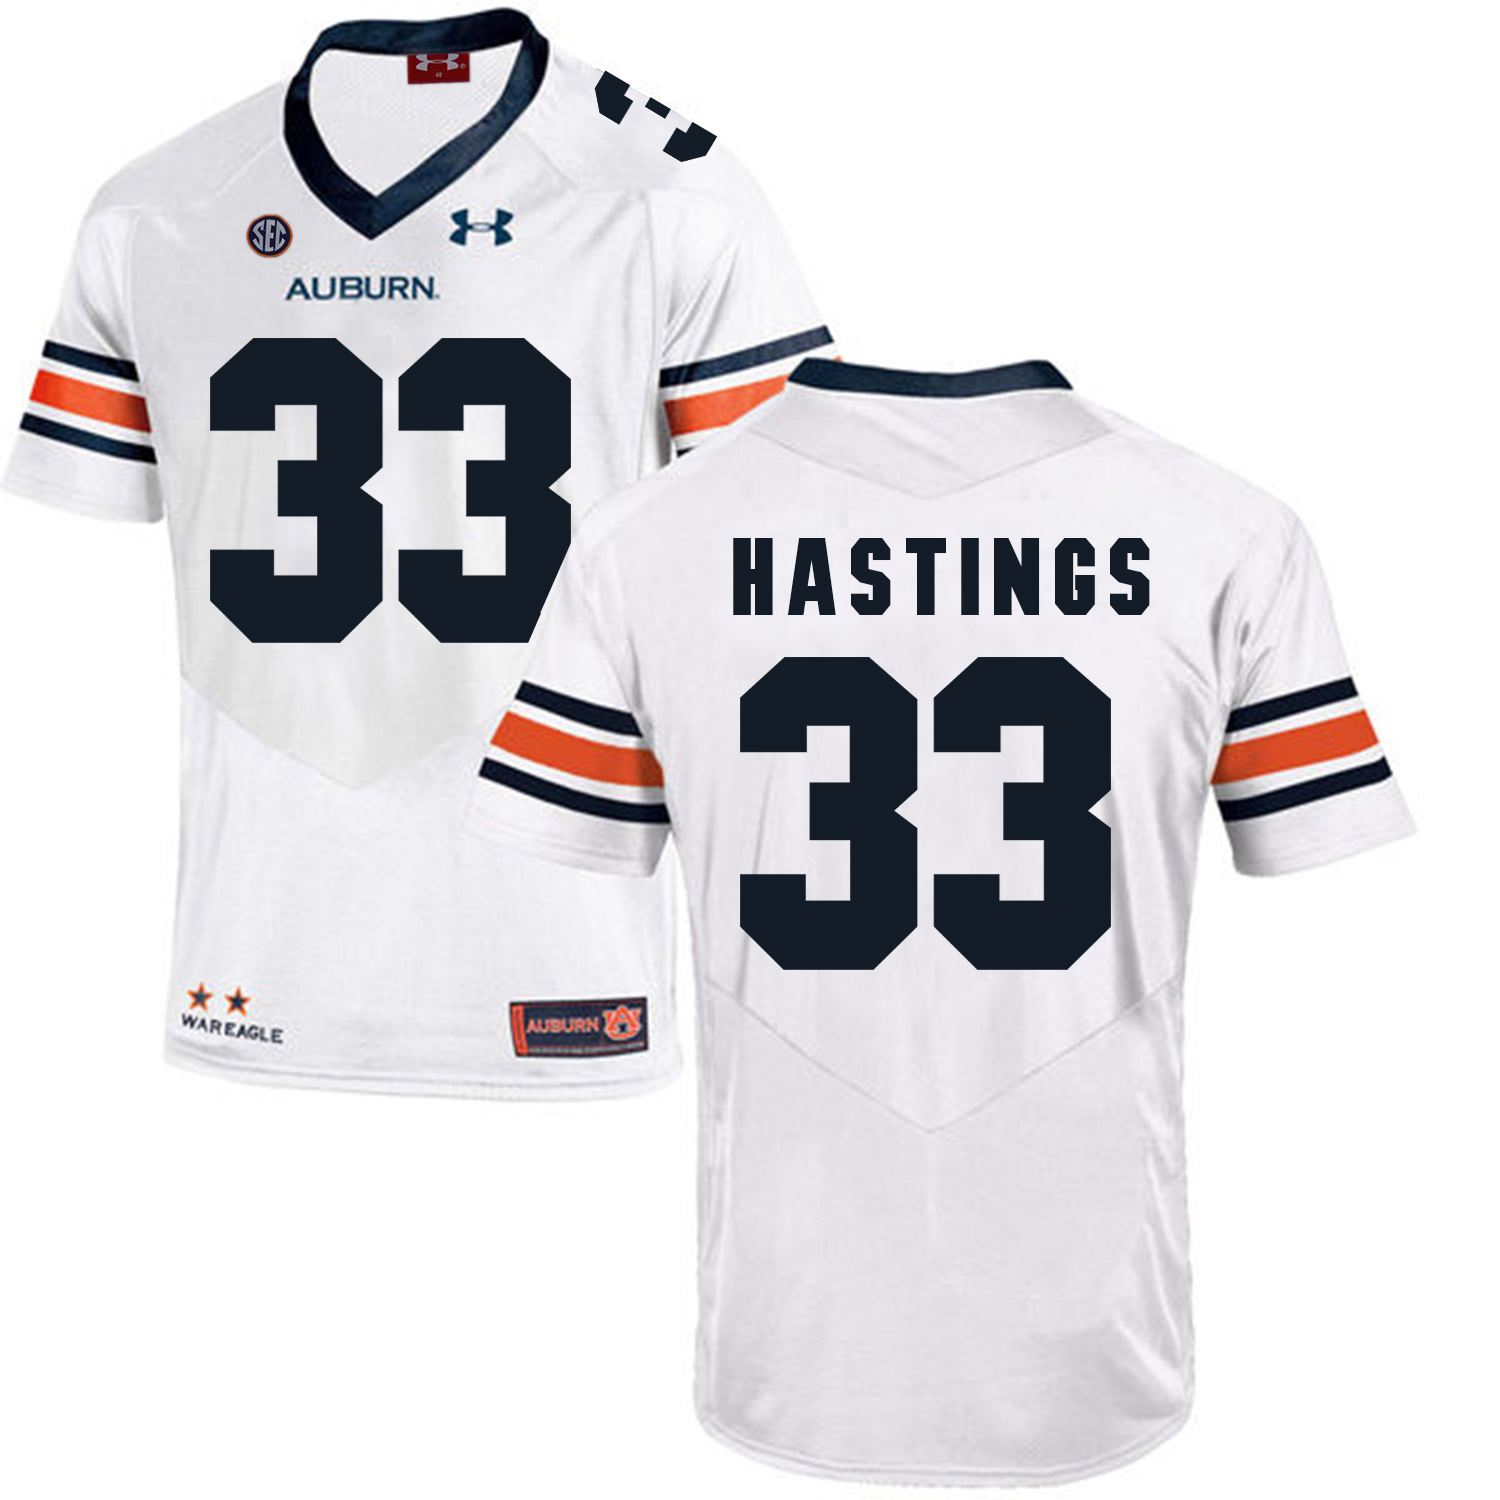 Auburn Tigers 33 Will Hastings White College Football Jersey